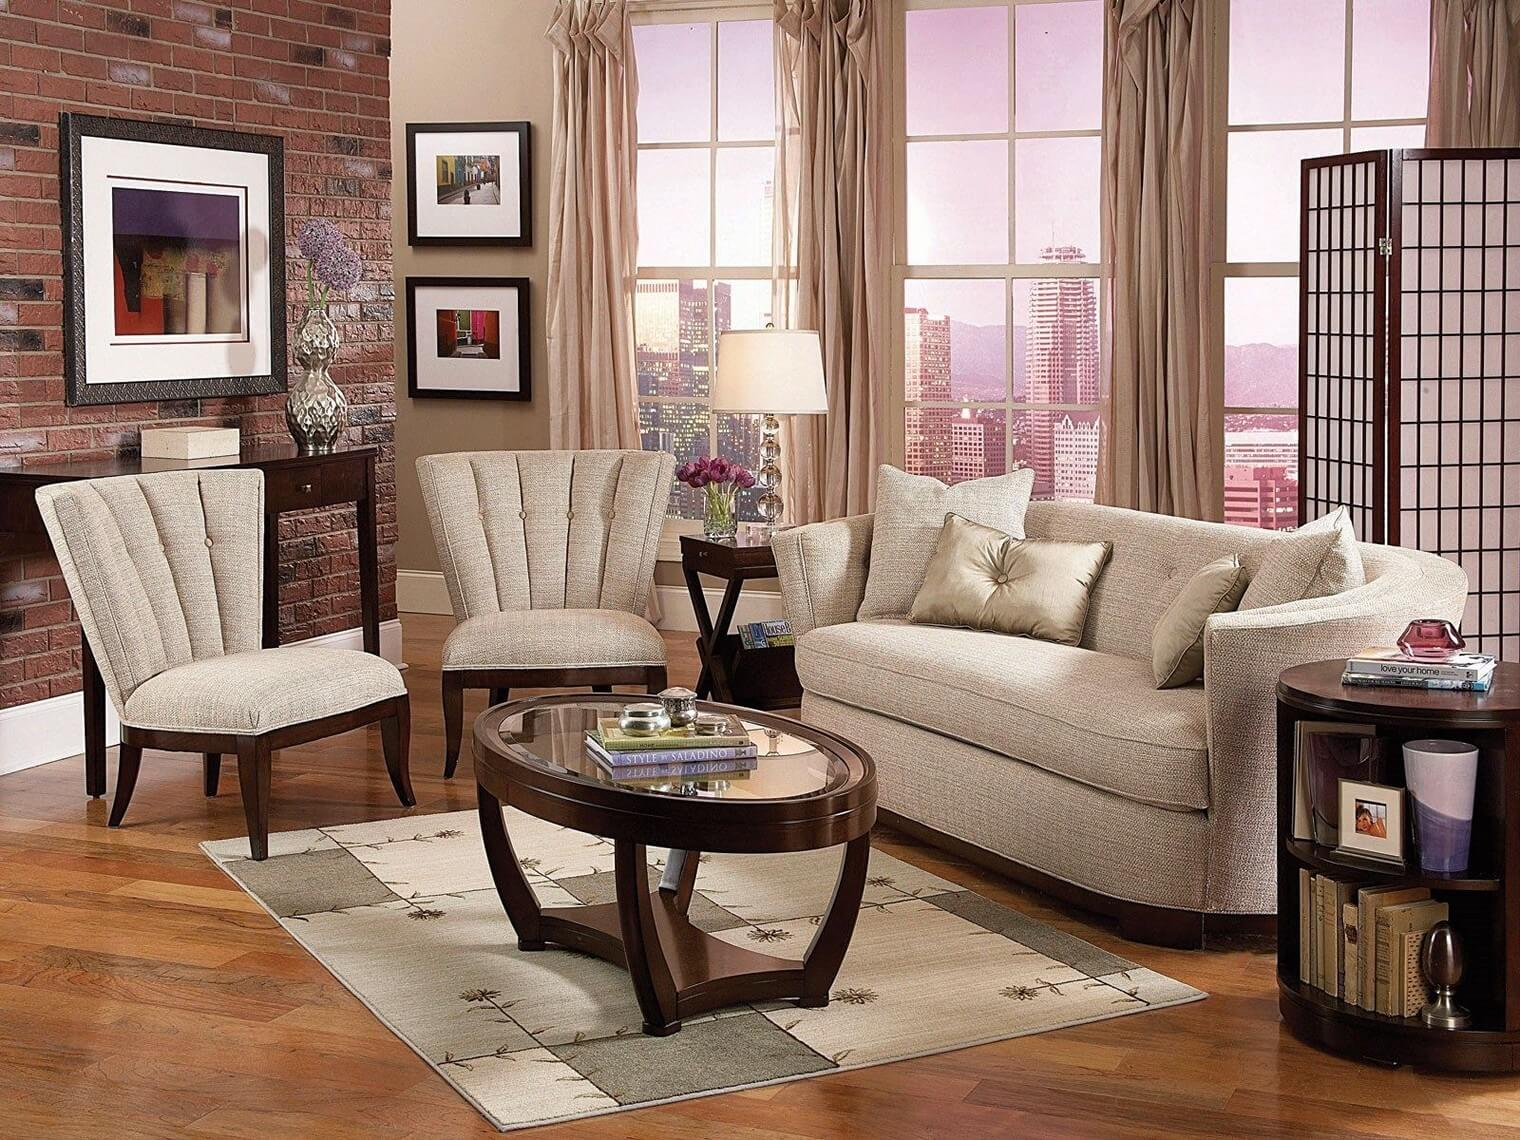 124 great living room ideas and designs photo gallery for Comfortable living room sets